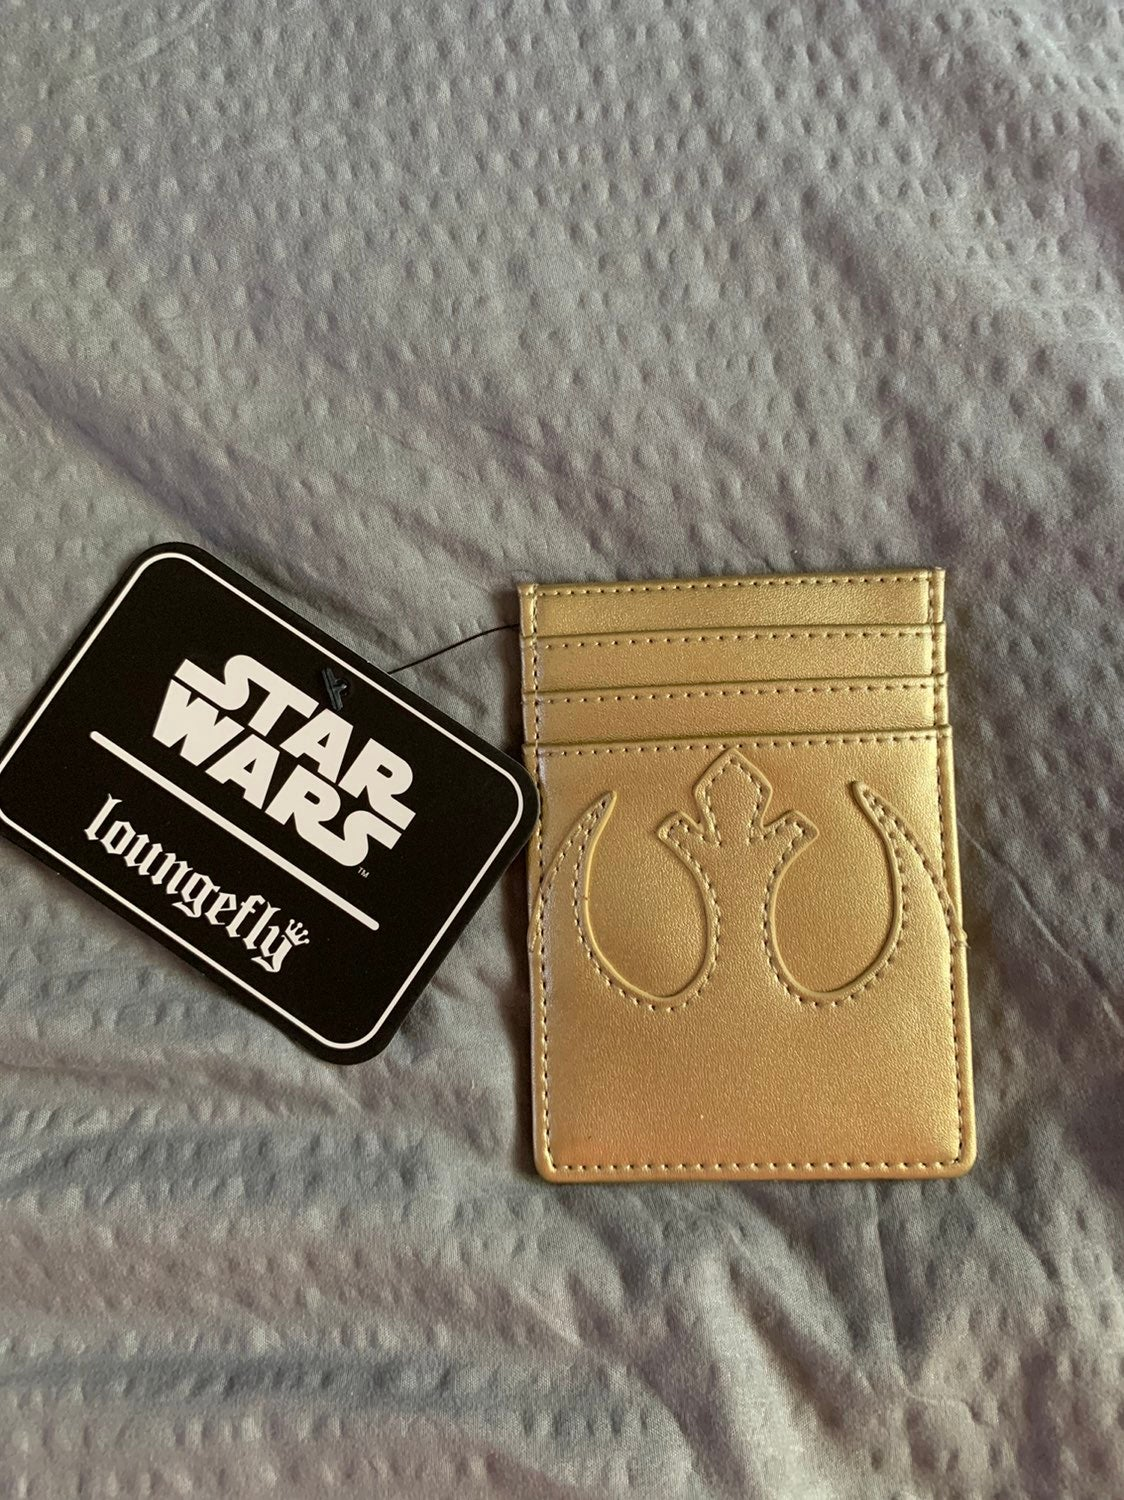 Star wars loungefly card wallet